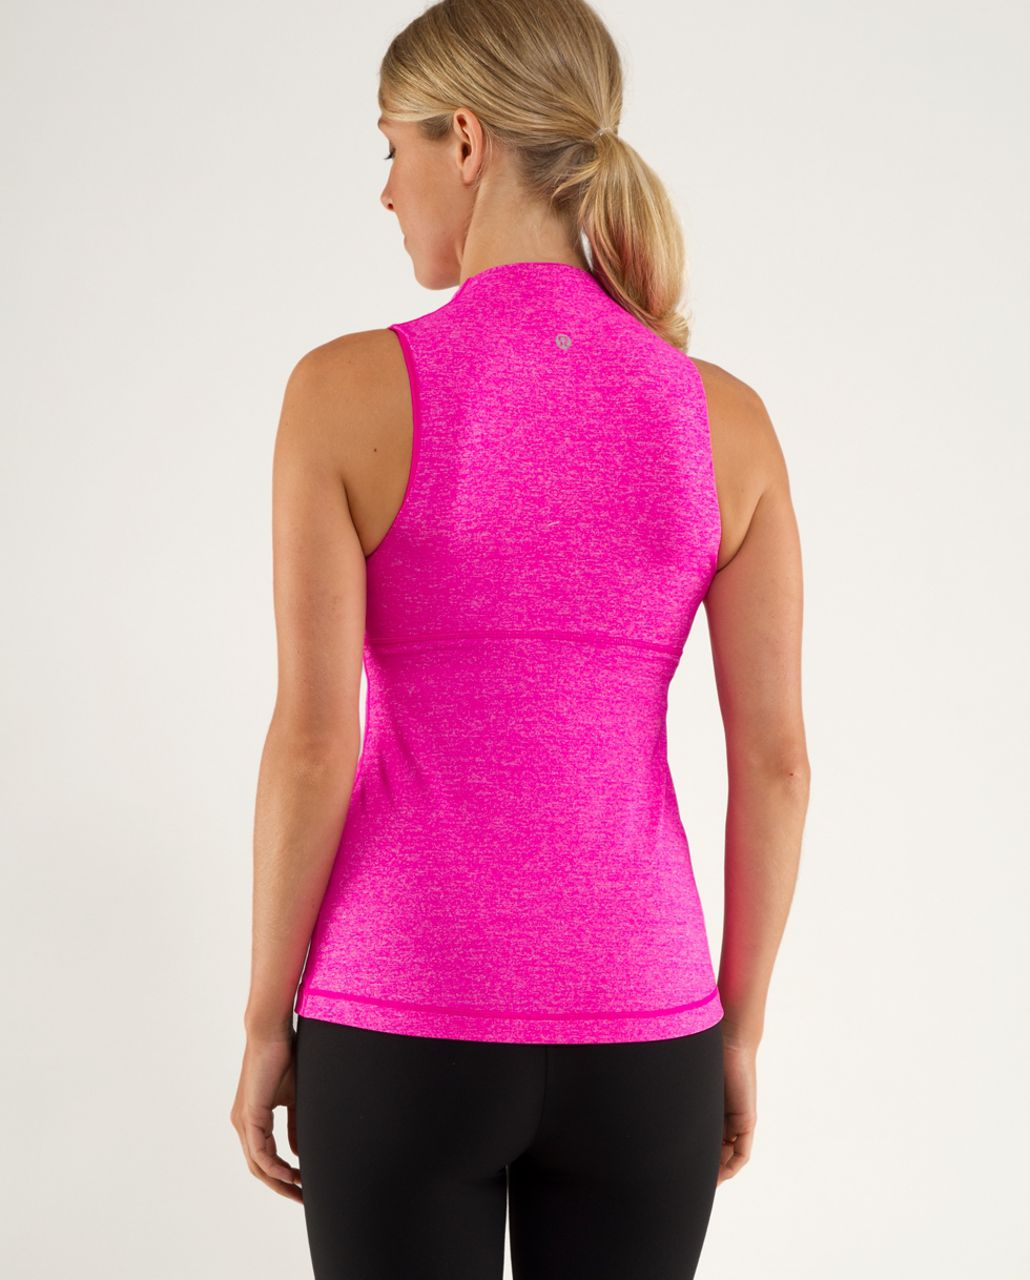 Lululemon Whisper Tank - Heathered Paris Pink